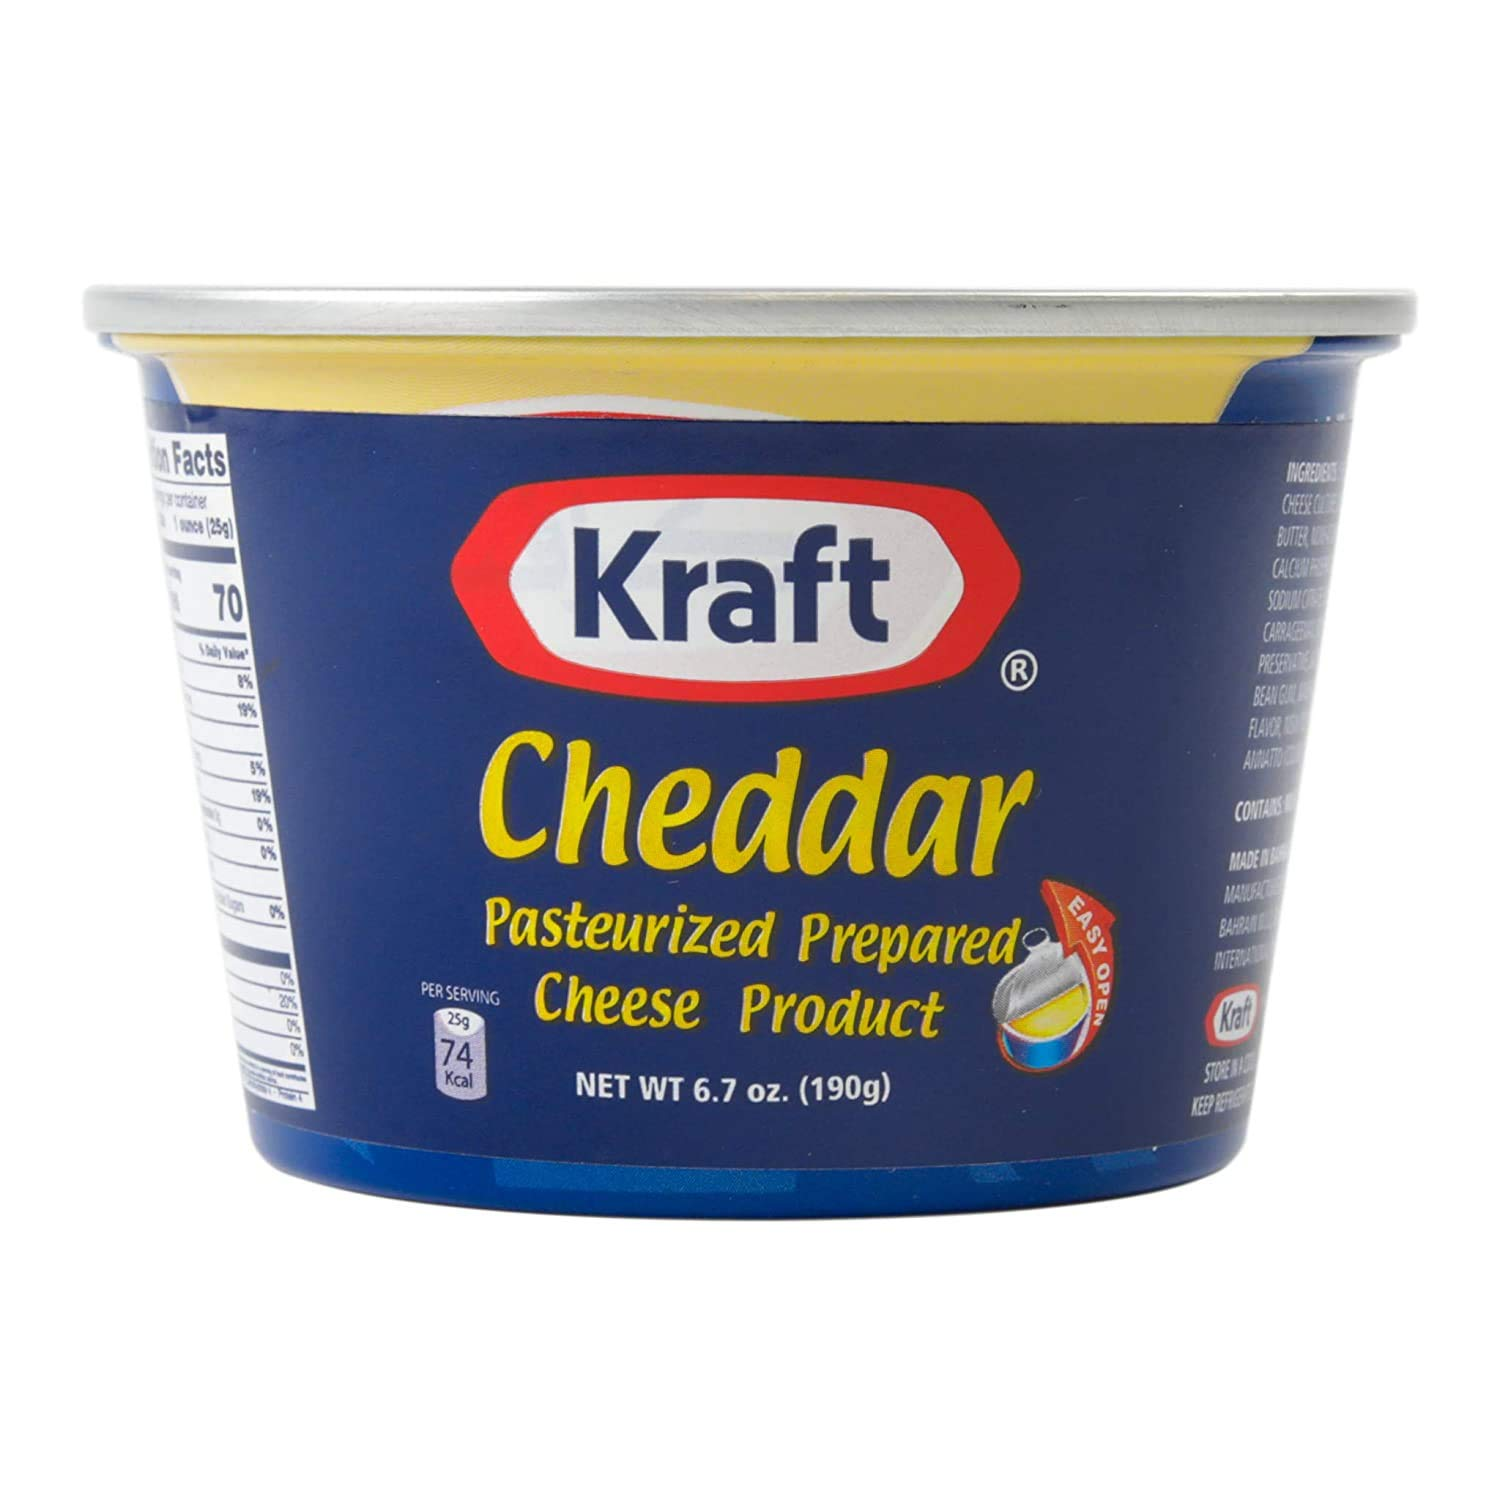 Kraft Prepared Pasturized Cheddar Cheese, Pantry Staple Cheese Spread for Crackers, 6.7 oz